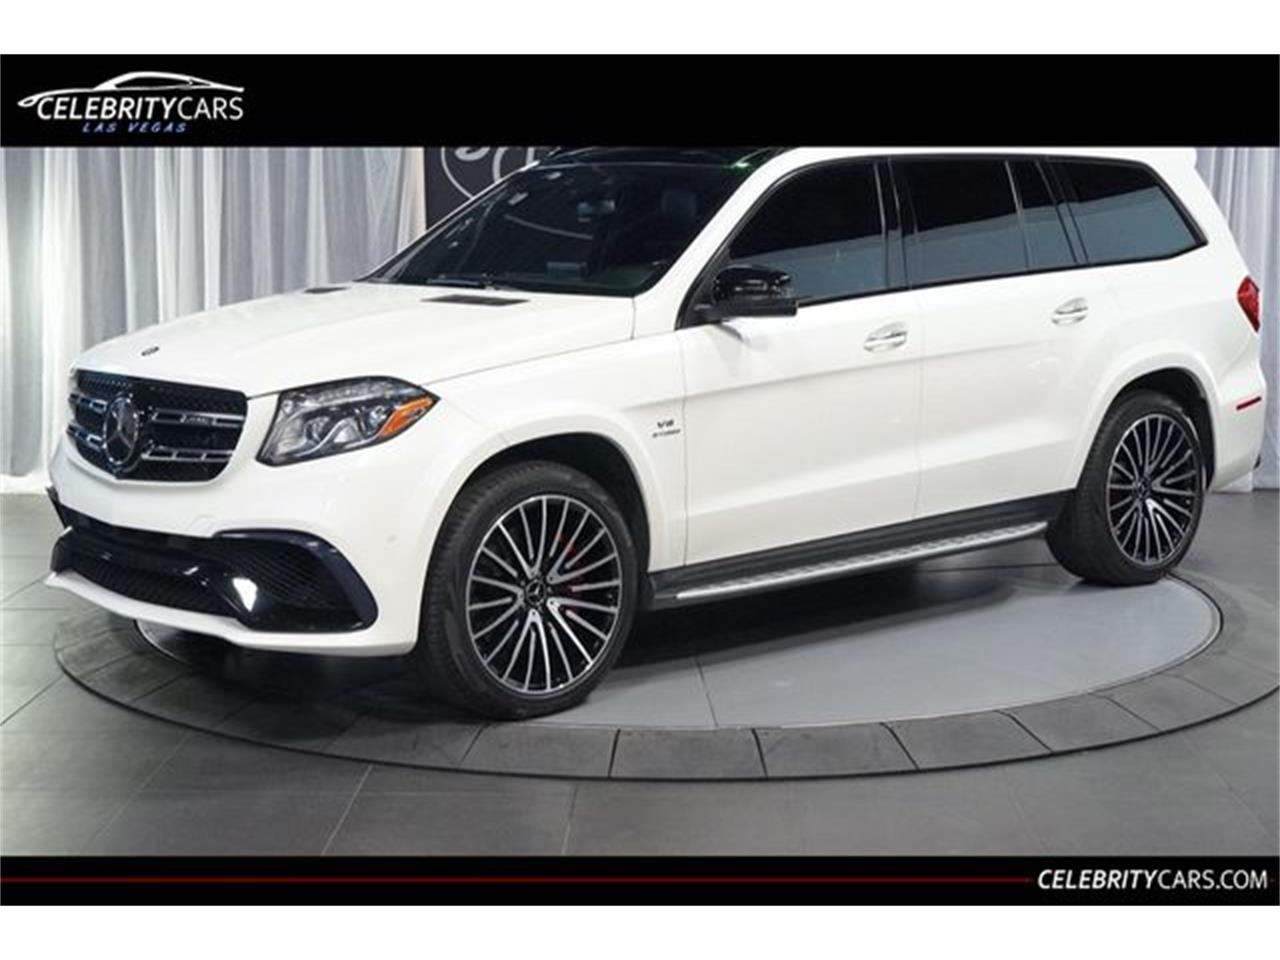 for sale 2017 mercedes-benz gls-class in las vegas, nevada cars - las vegas, nv at geebo